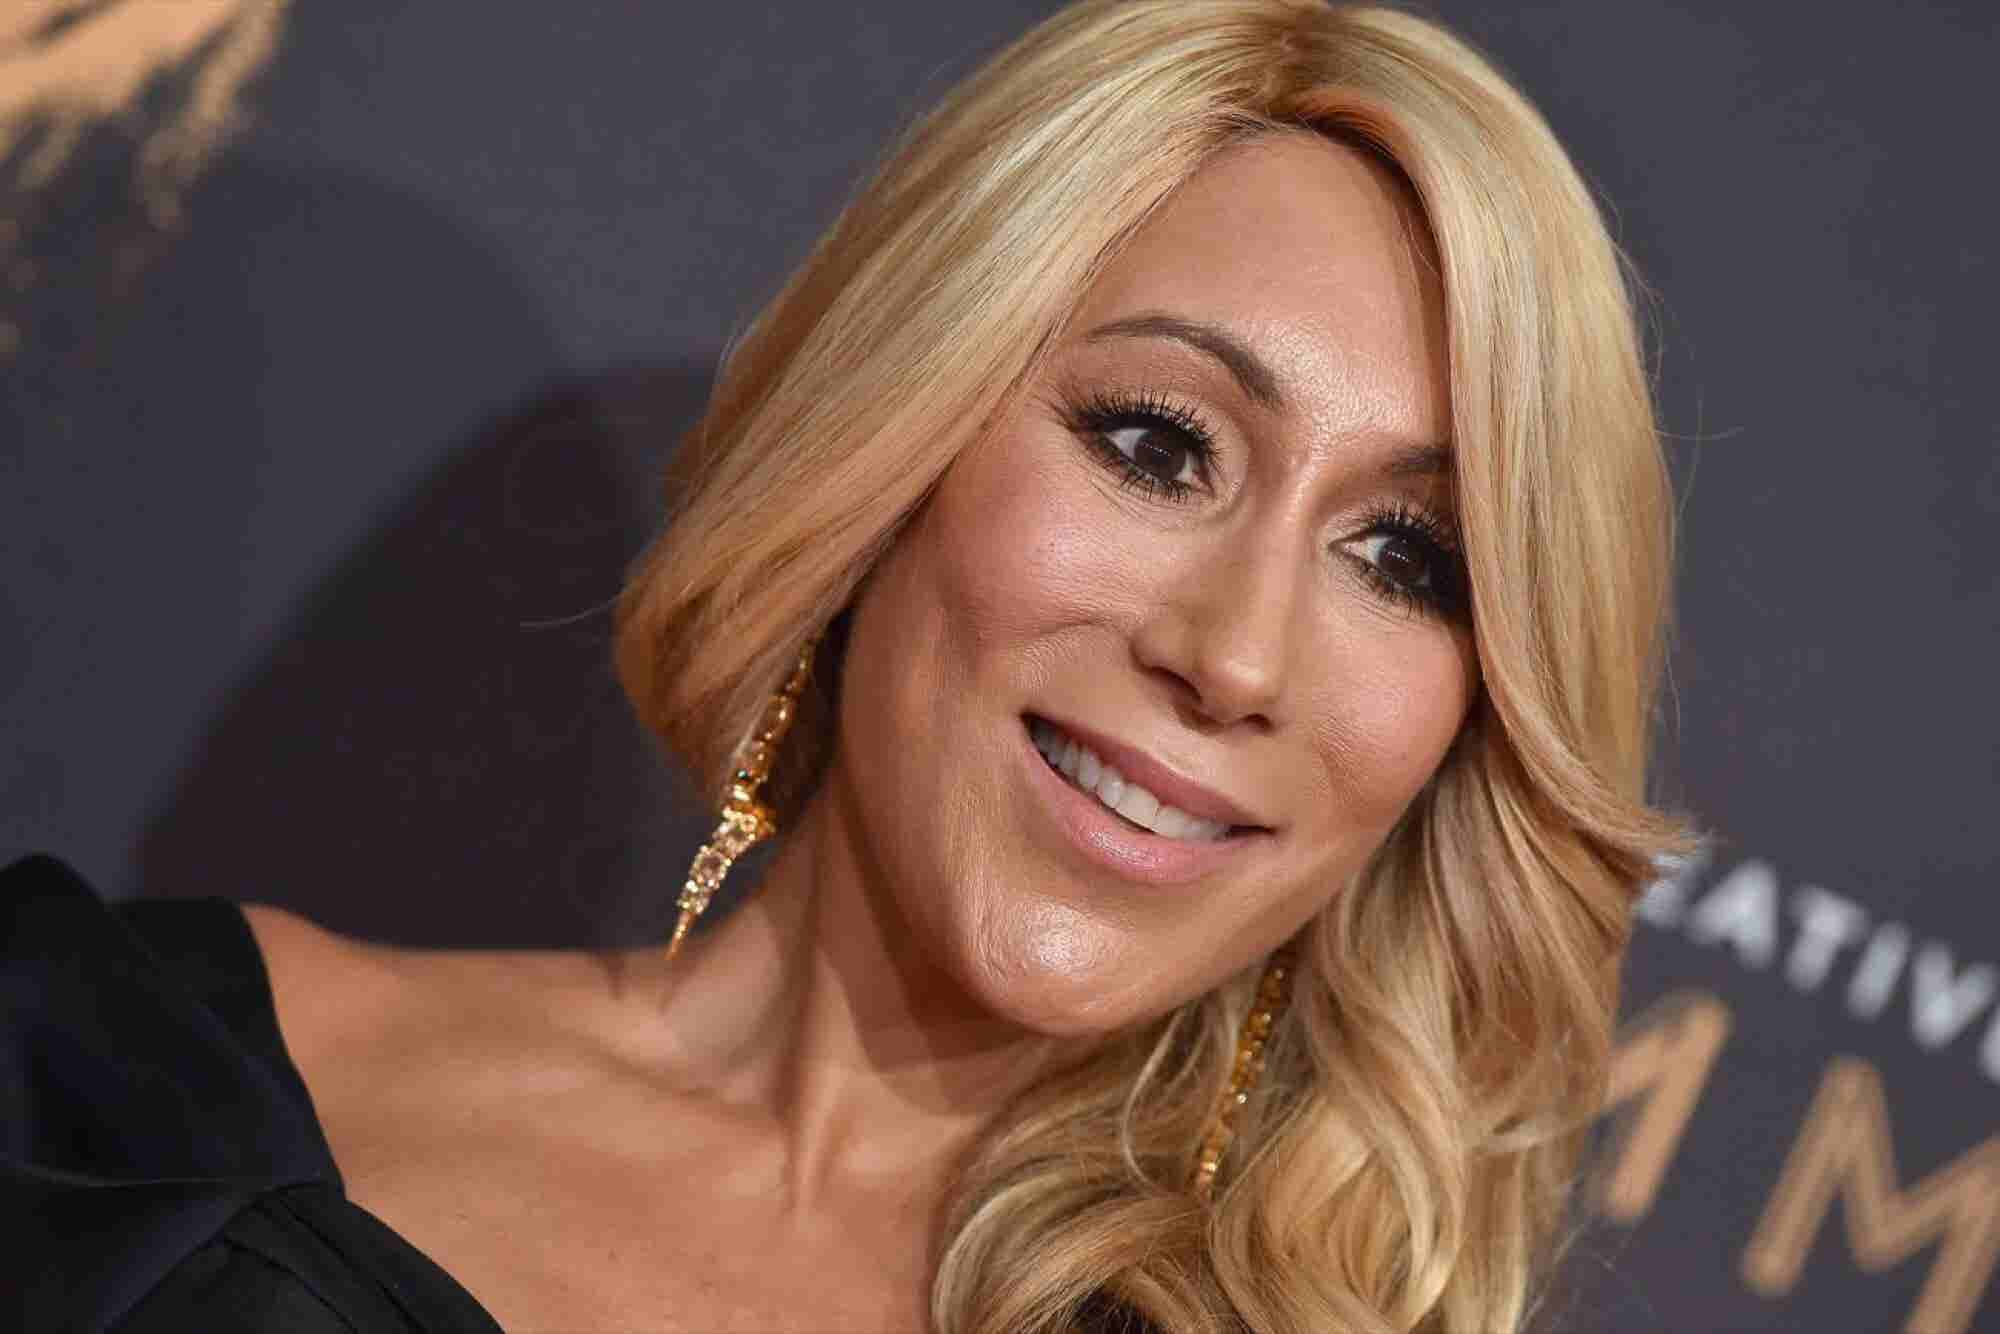 8 Quotes From Shark Tank's Lori Greiner That Will Make You Proud to be An Entrepreneur